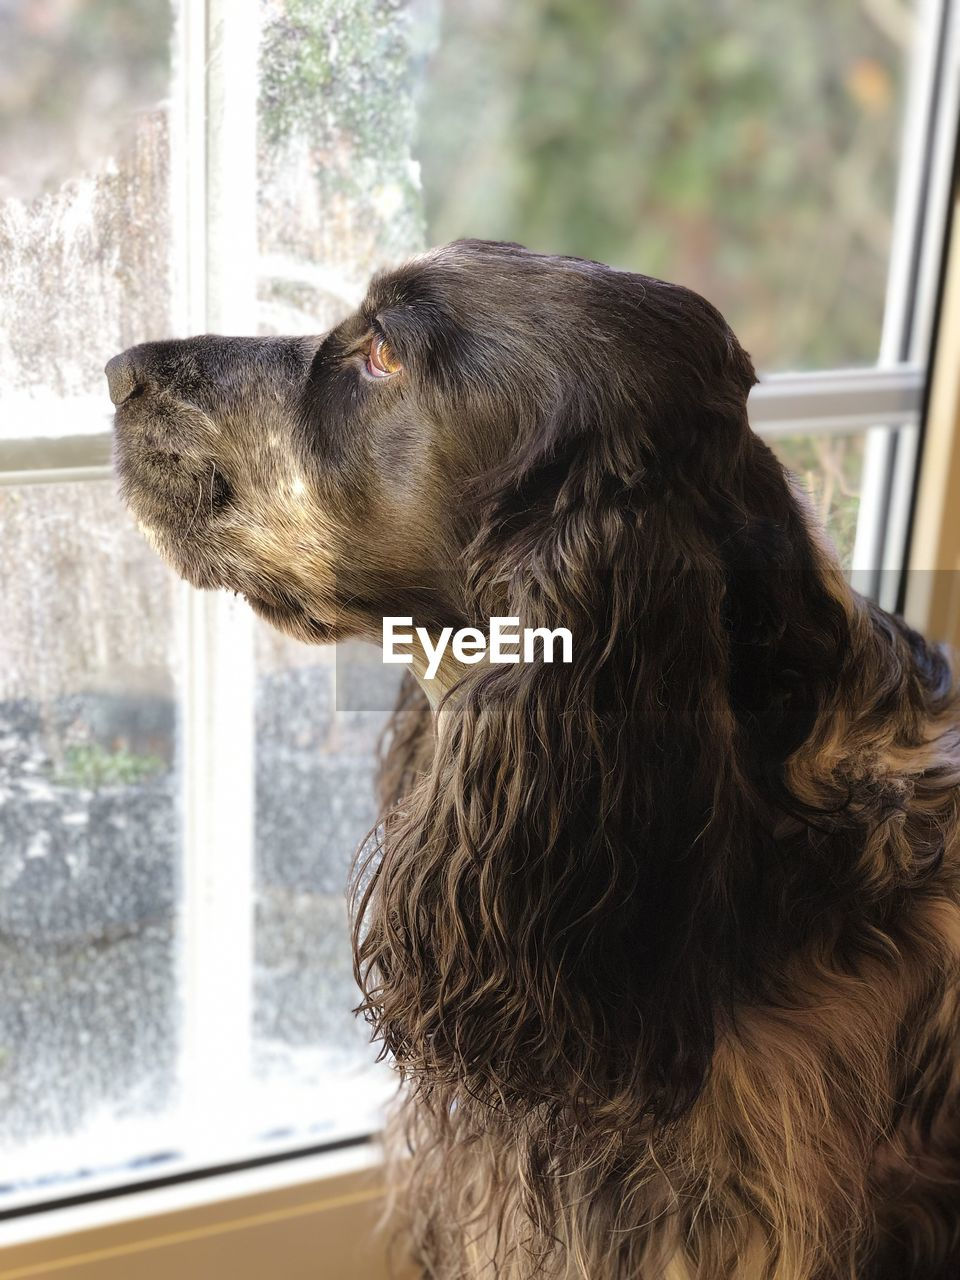 one animal, mammal, animal themes, animal, pets, window, domestic, domestic animals, dog, canine, vertebrate, looking, side view, day, transparent, glass - material, indoors, no people, looking away, close-up, animal head, profile view